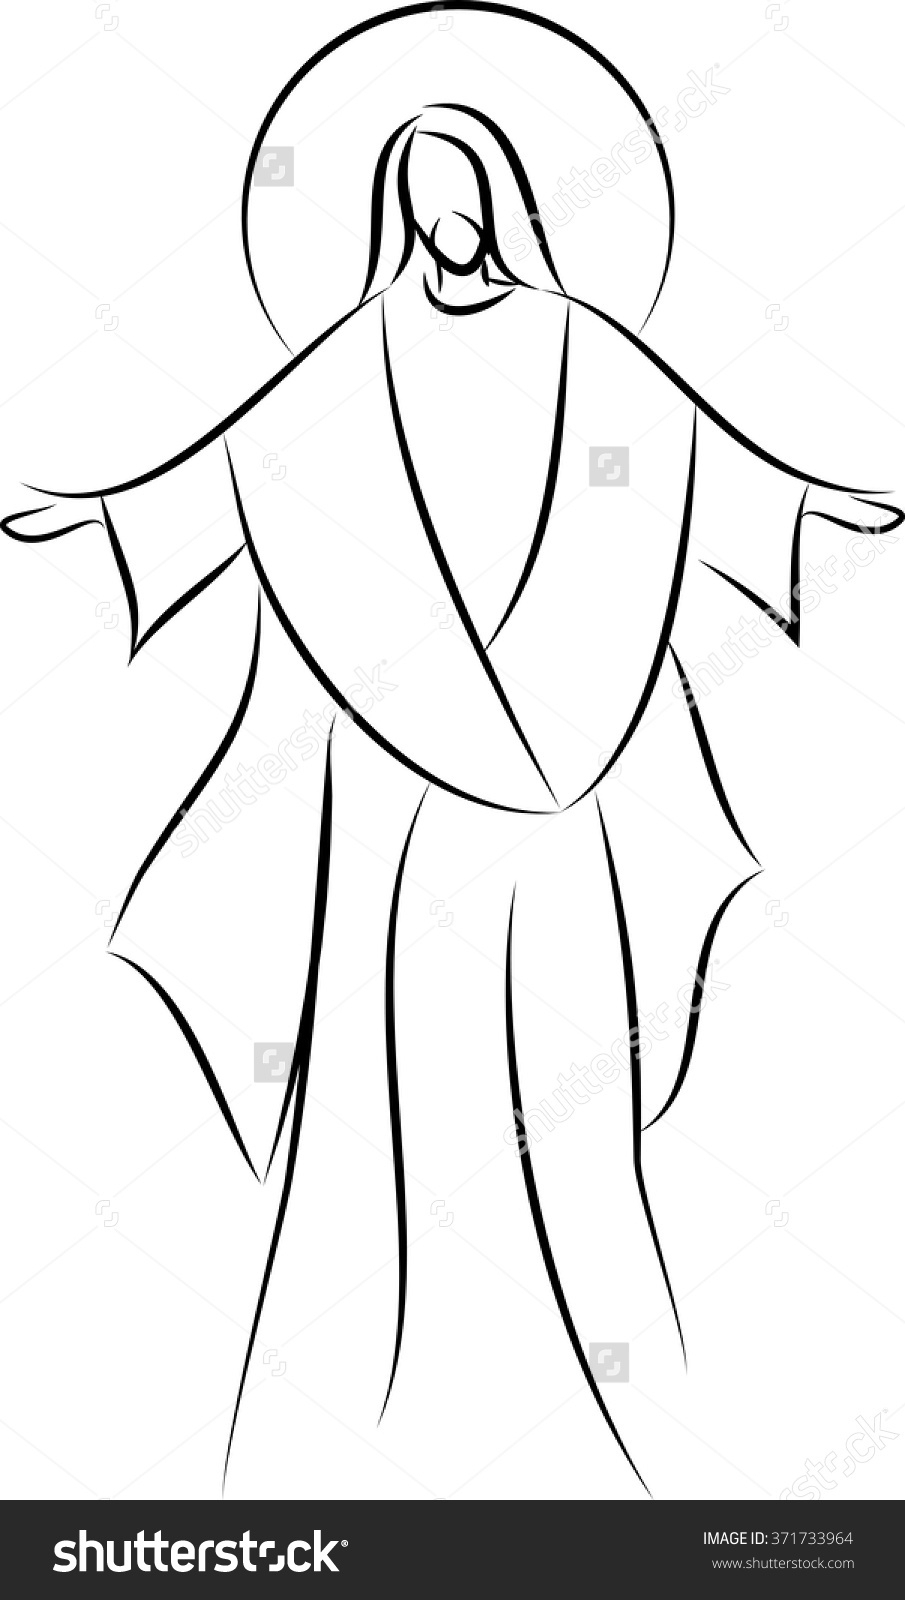 easy to draw god god drawing at getdrawings free download easy draw to god